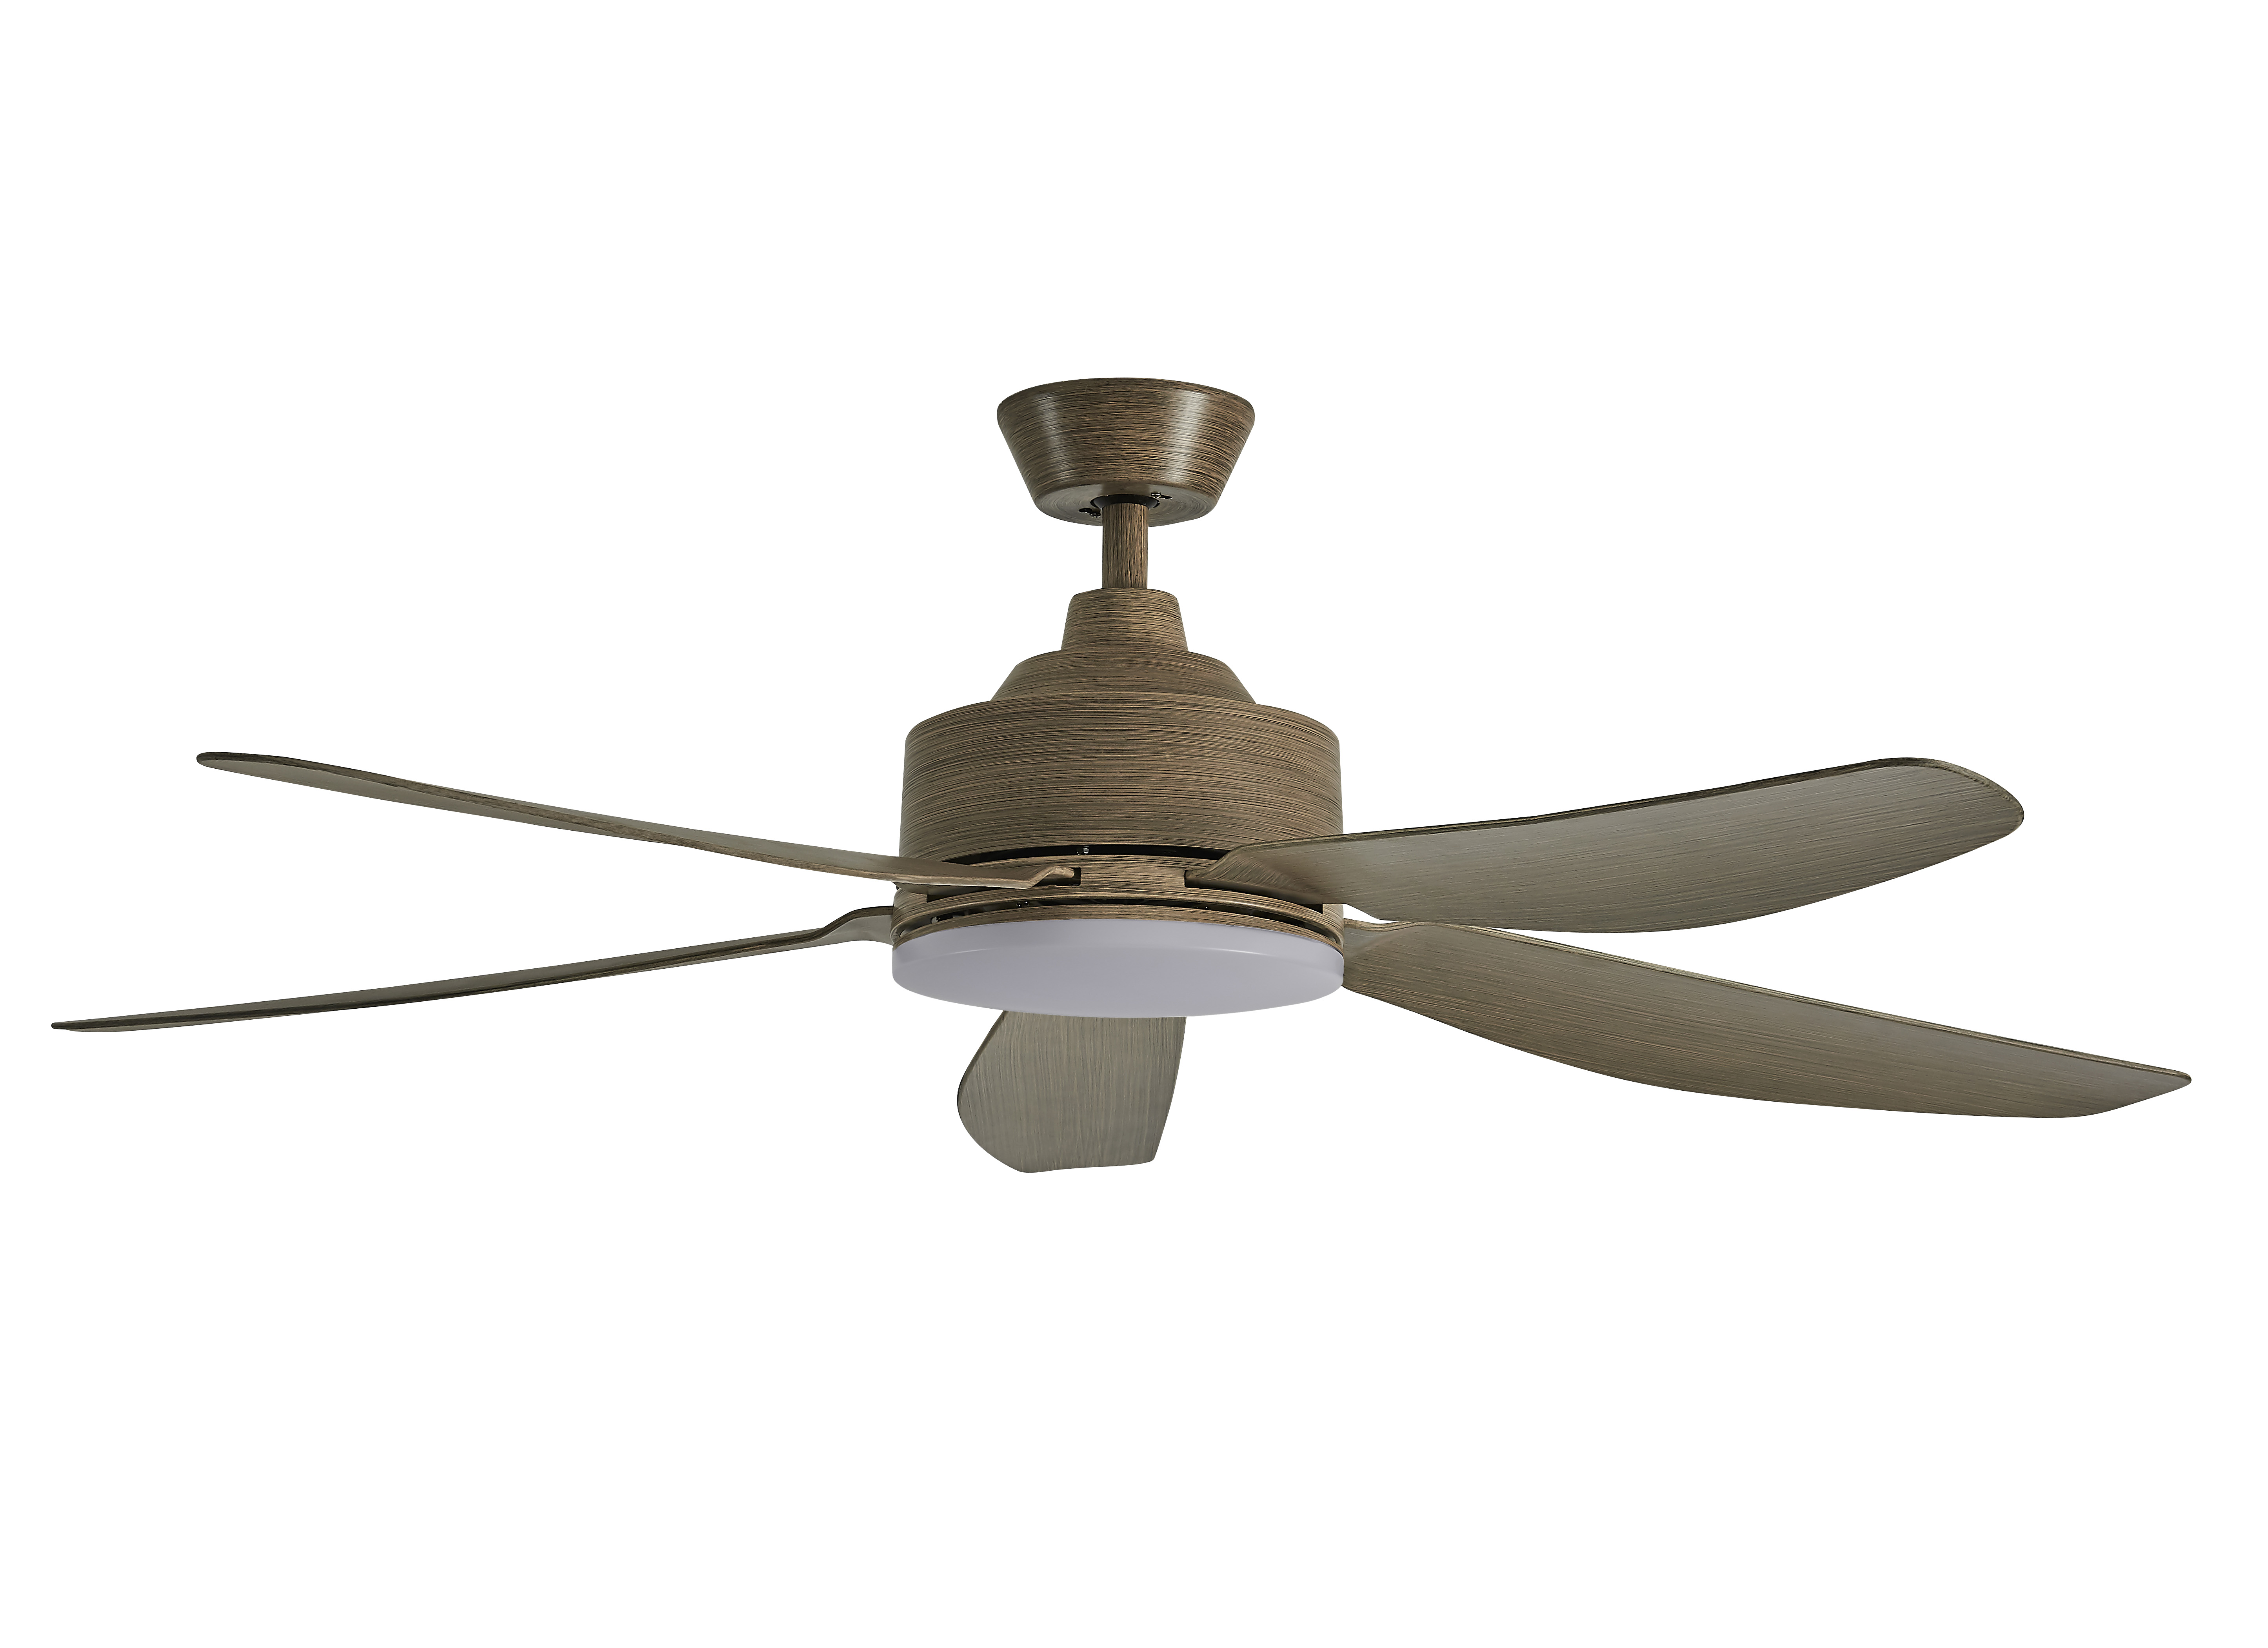 Crestar Airis DC Ceiling Fan